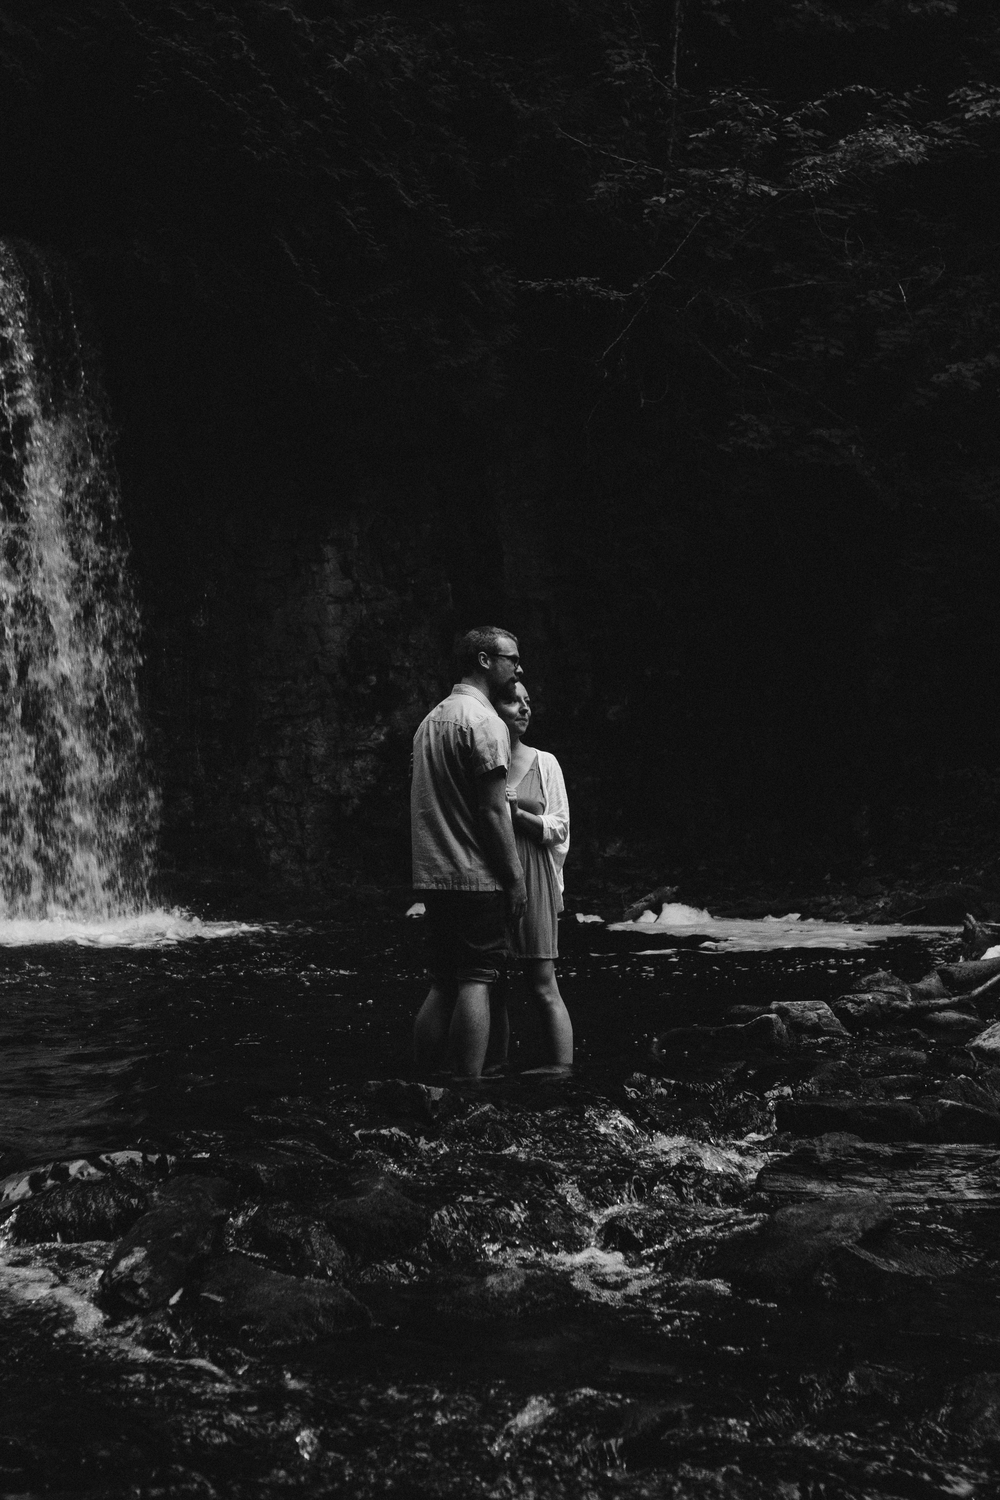 Hoggs Falls engagement session in the Beaver valley